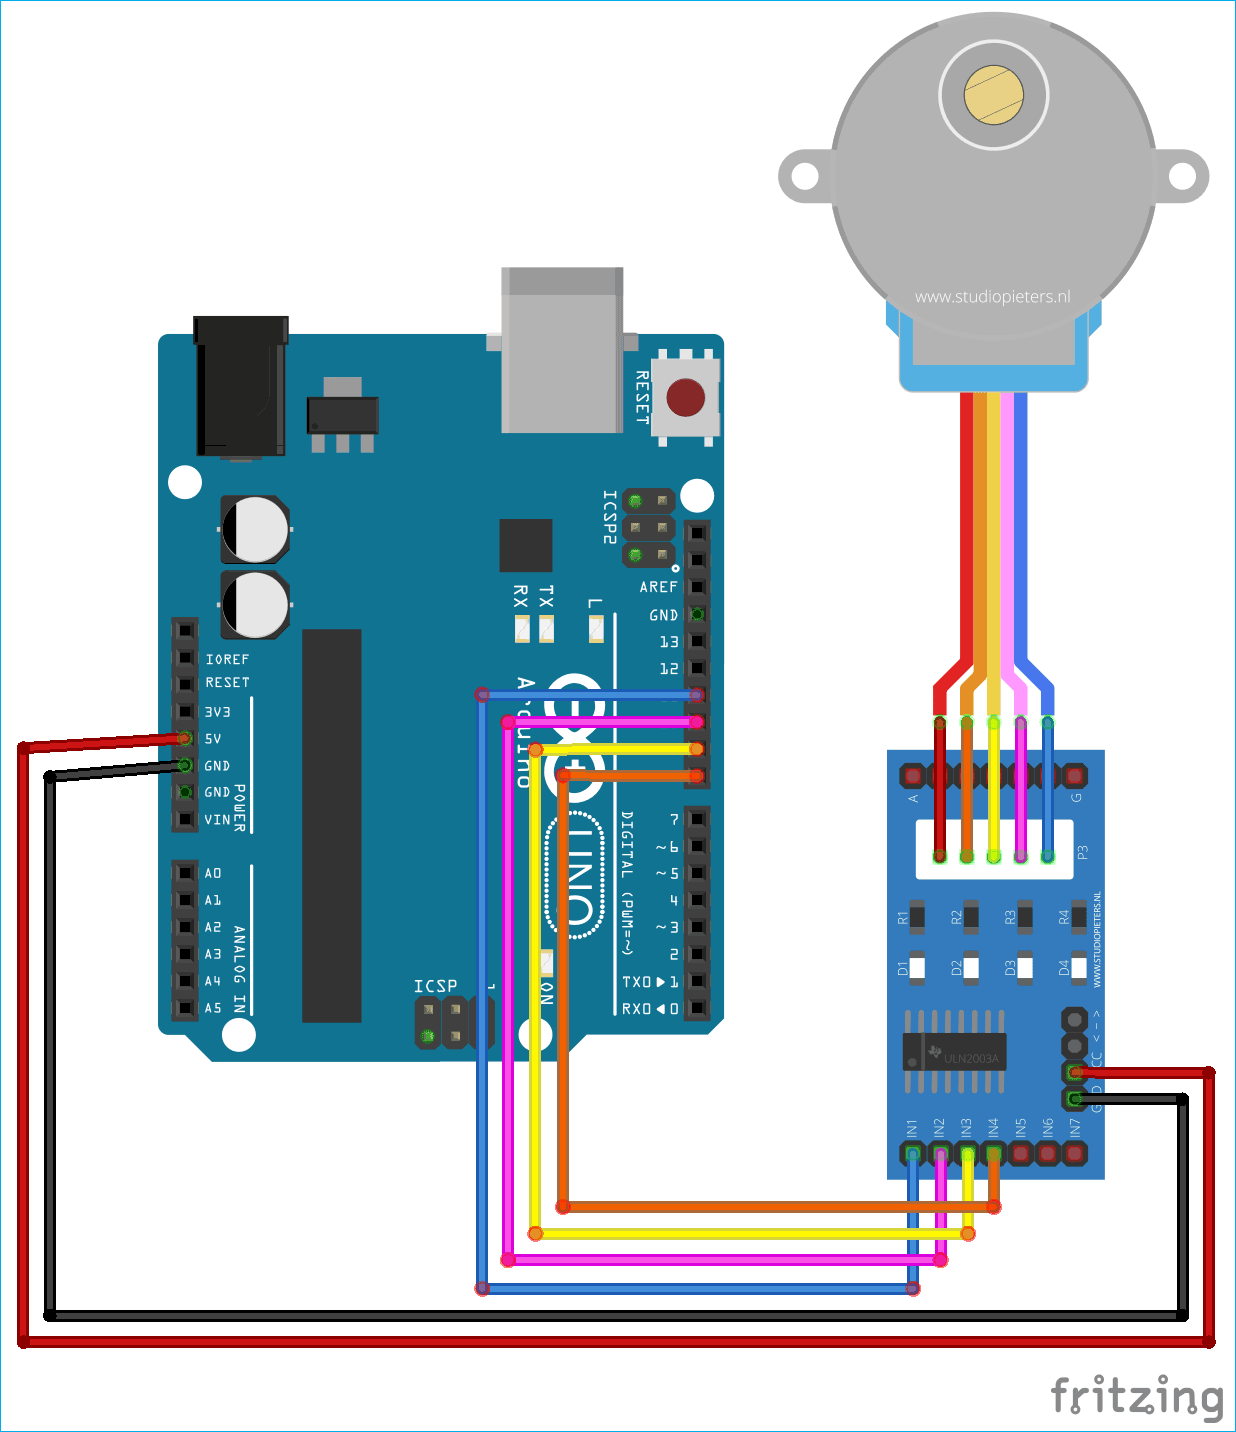 Stepper Motor Control Using Matlab And Arduino Tutorials For Simulink Speed System Controlling With